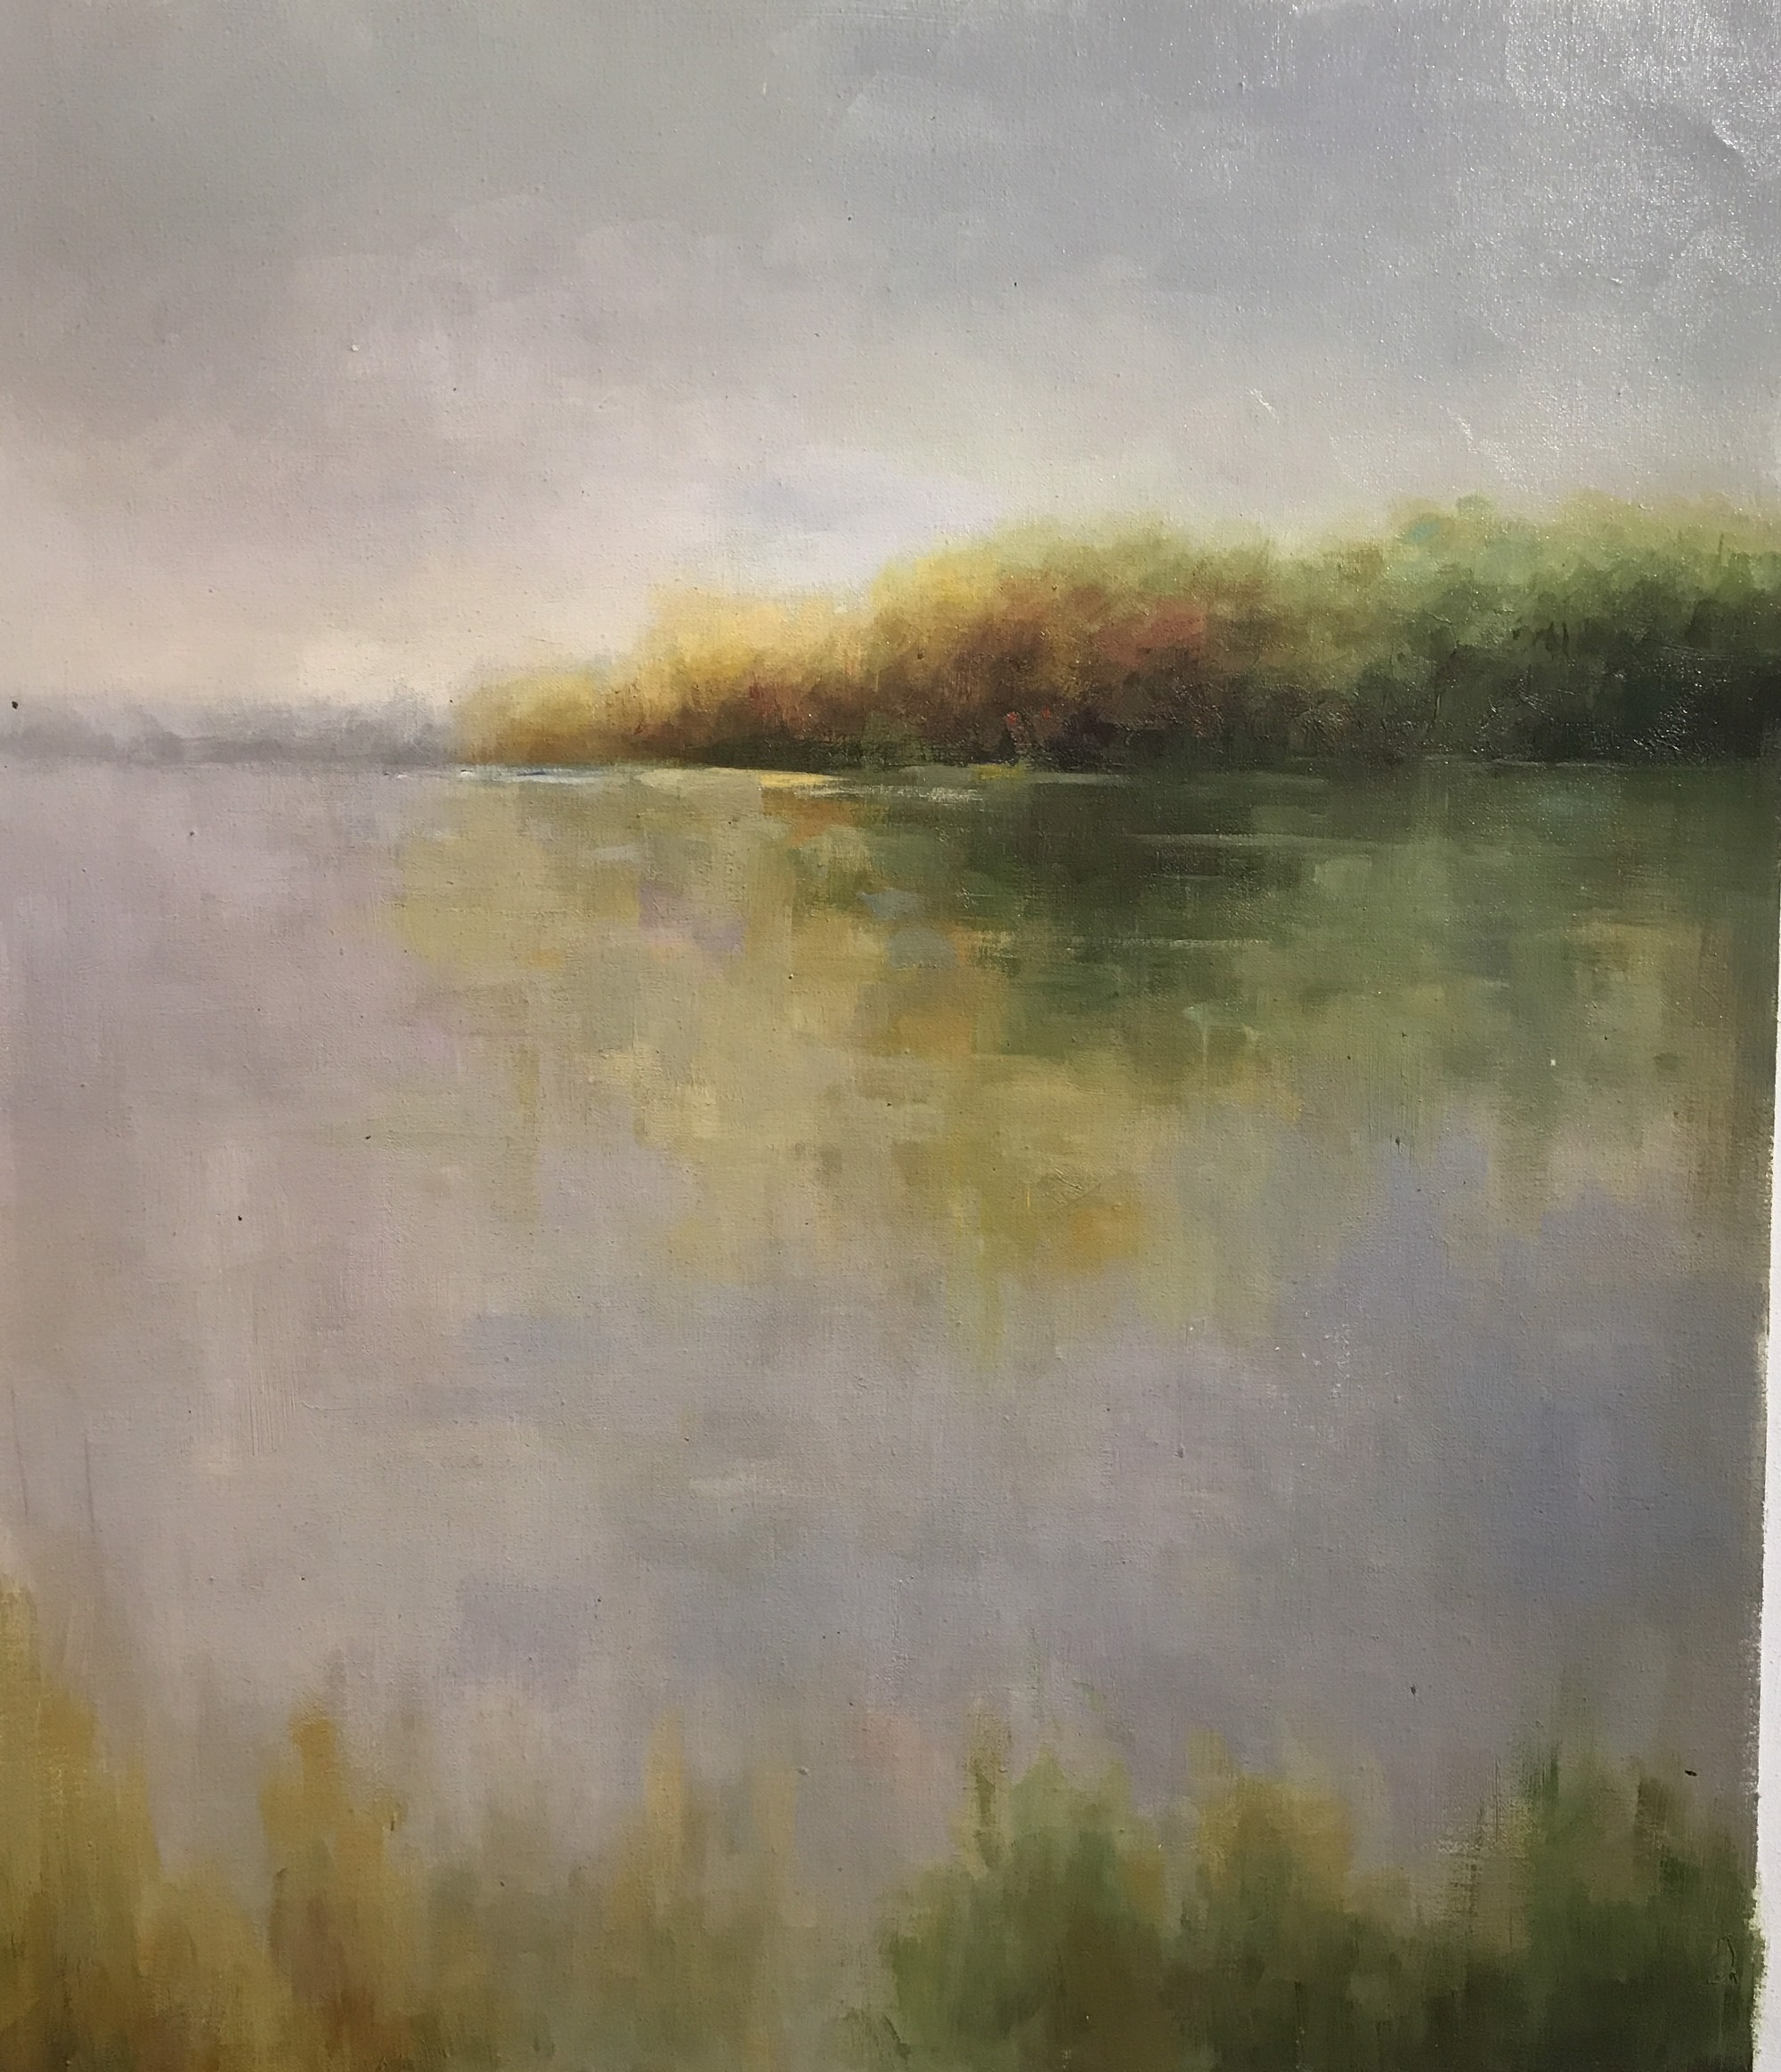 CALM WATER by VARIOUS WORKS